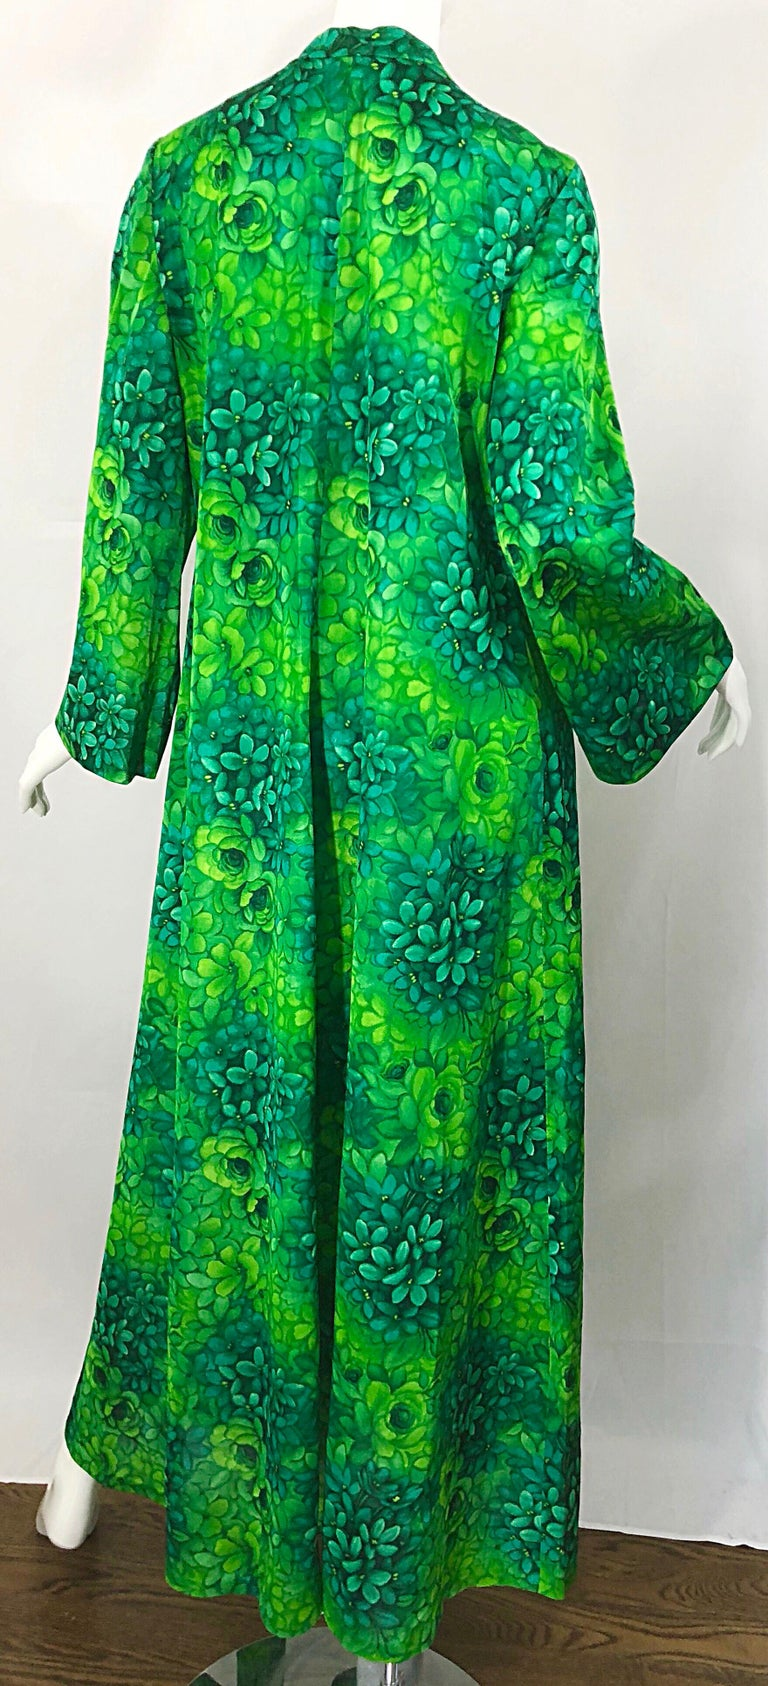 Amazing 1970s Neon + Kelly Green Abstract Flower Print 70s Vintage Caftan Dress For Sale 7